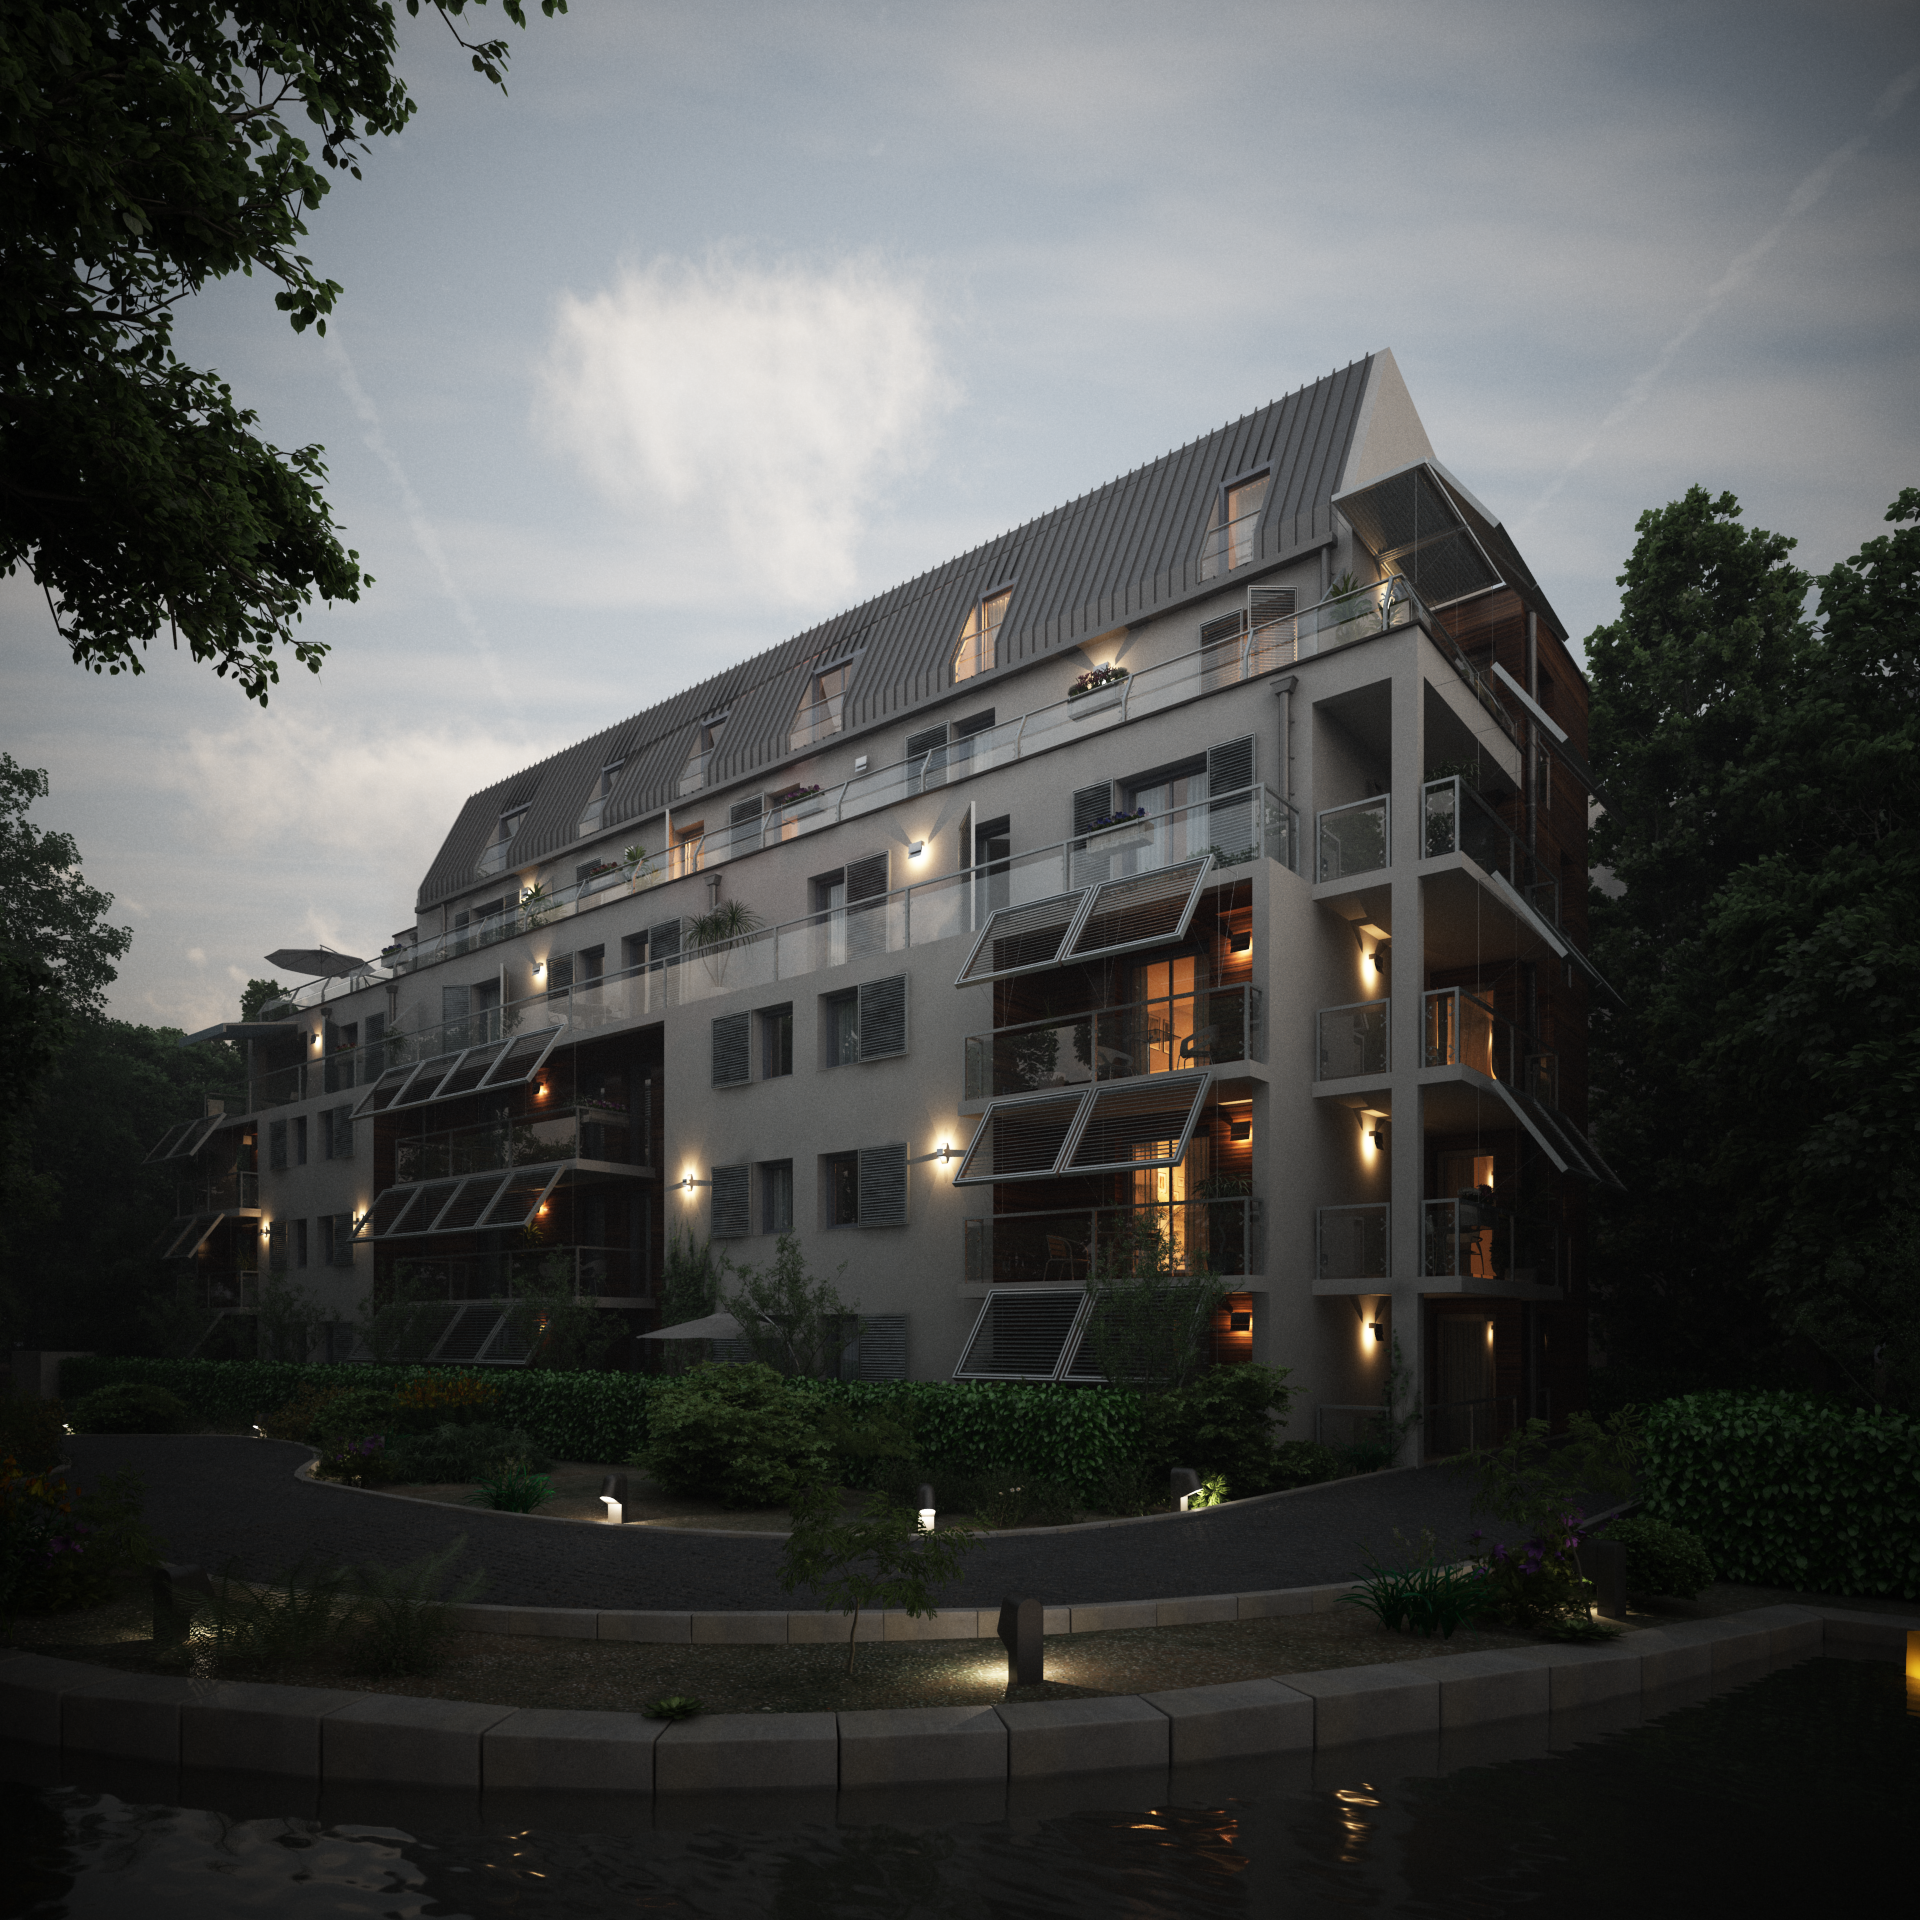 Appartment Complex - Night by externible